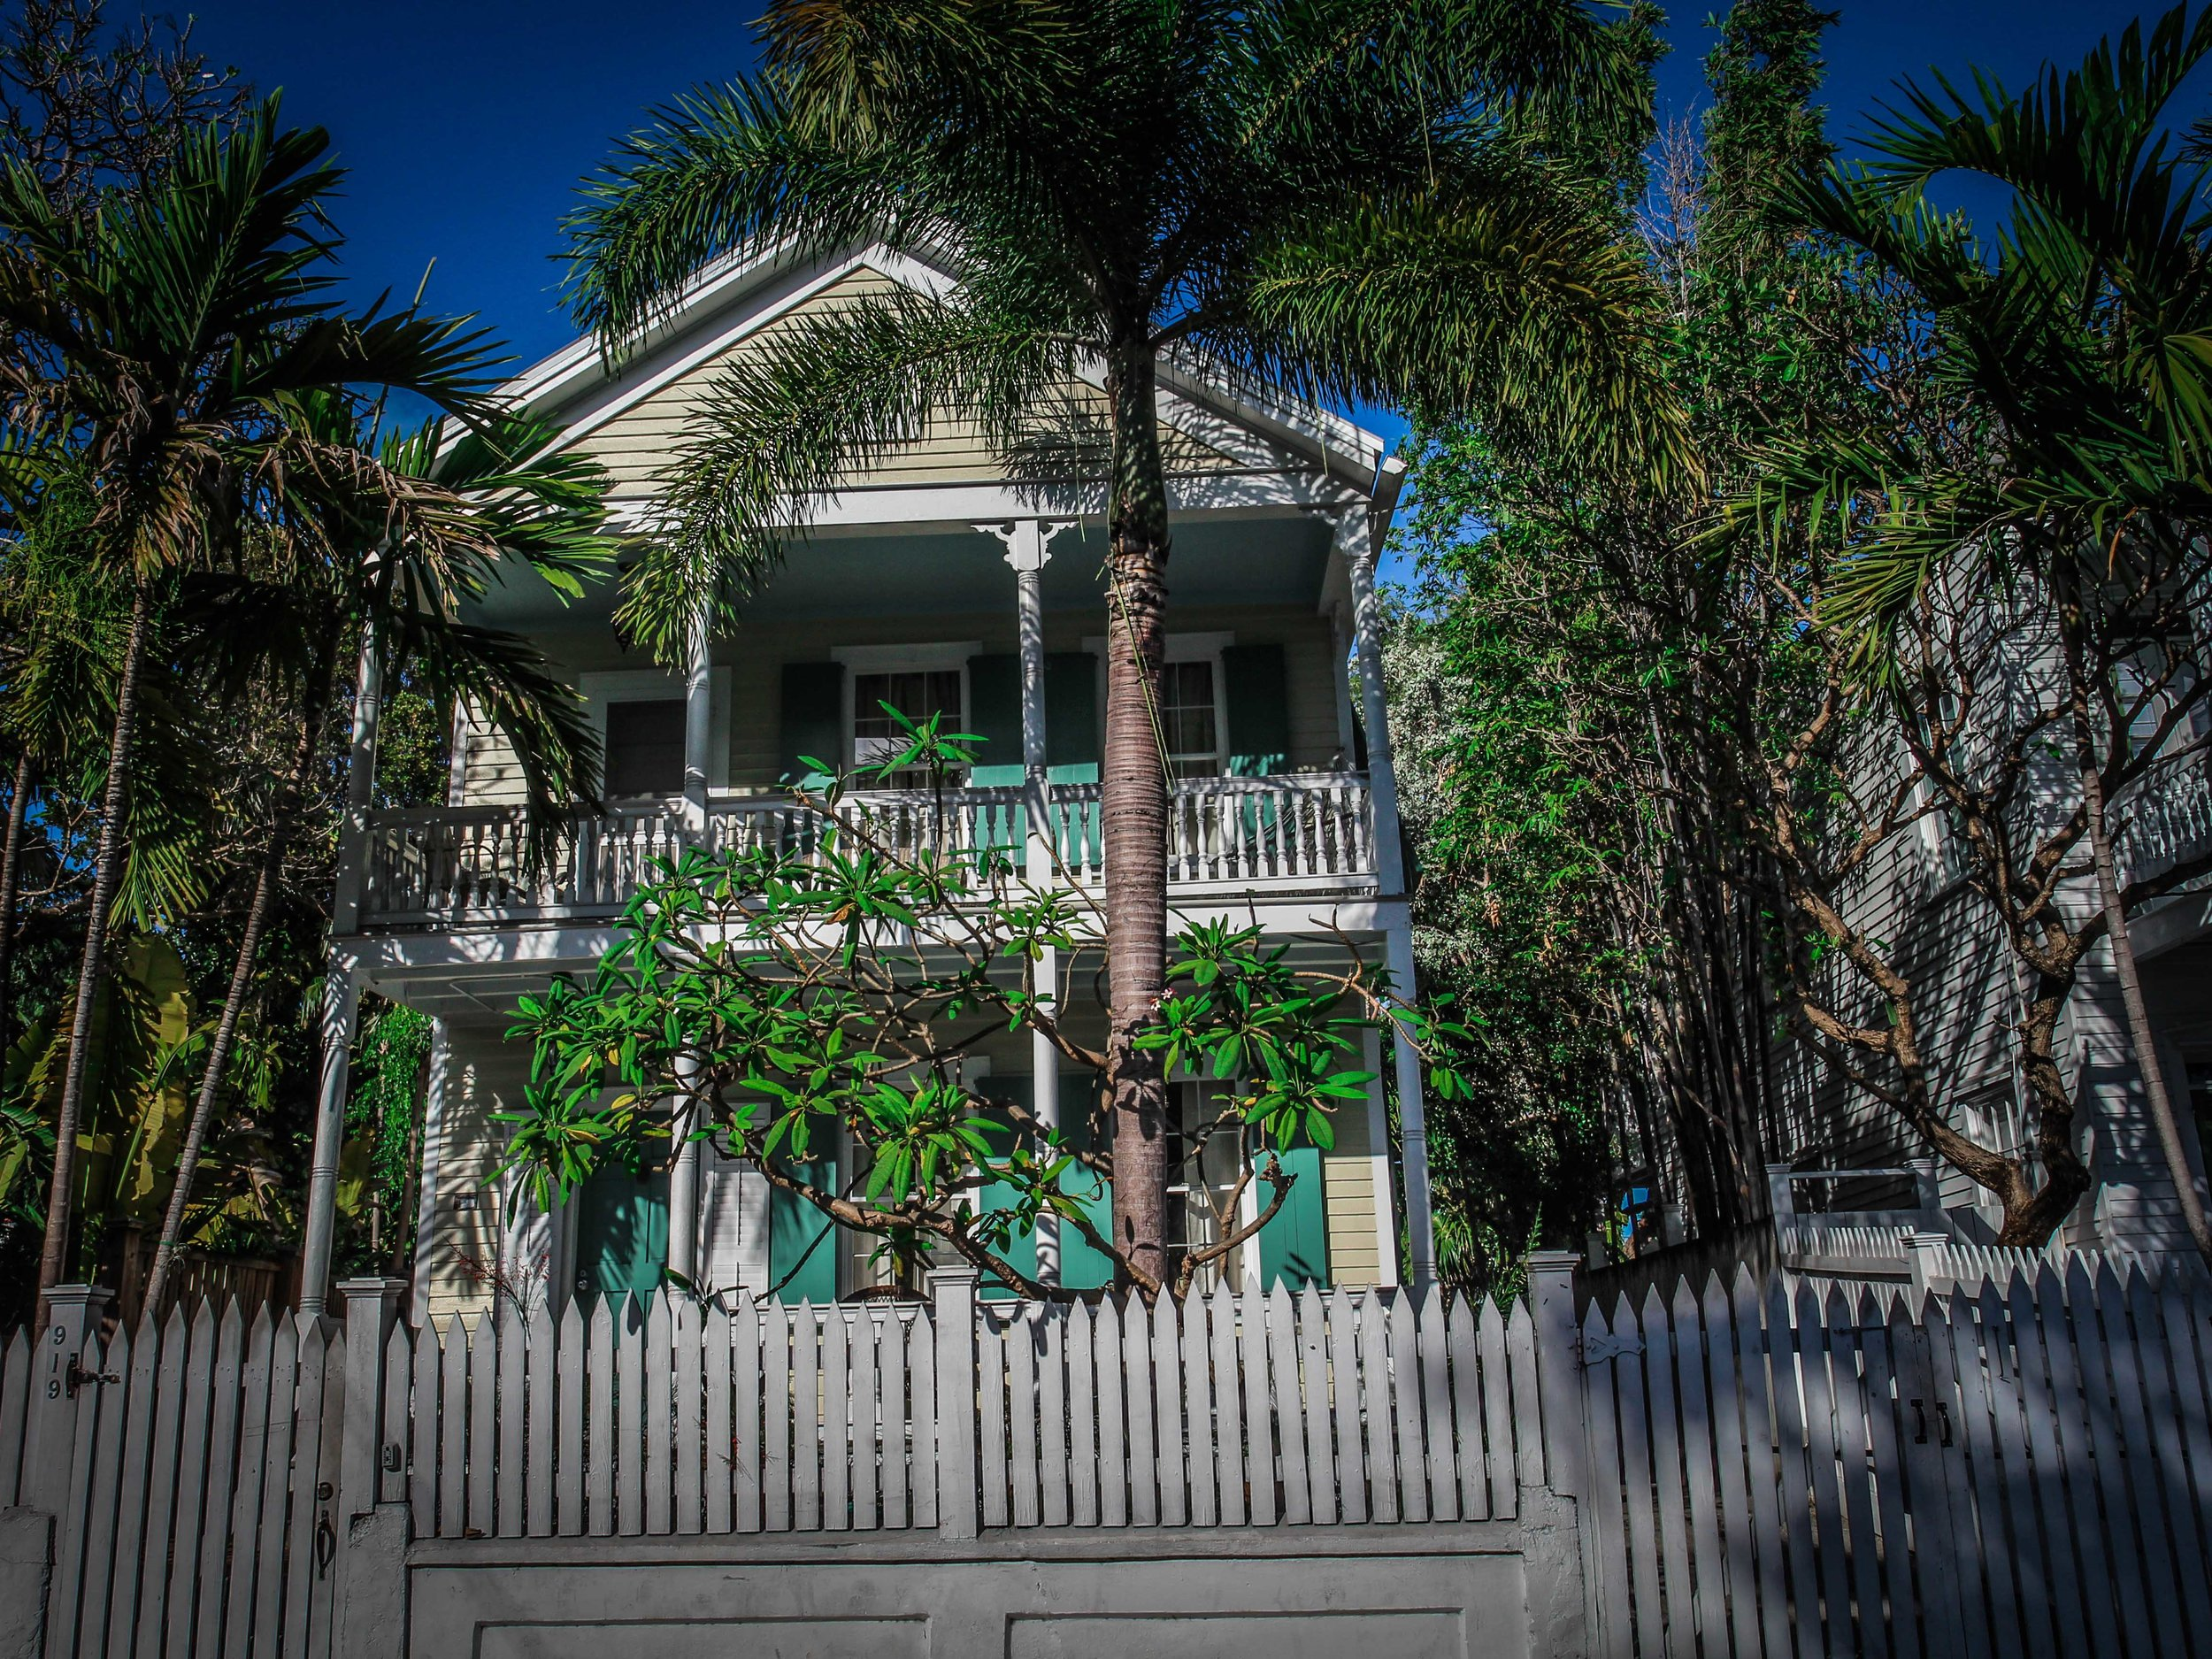 Florida_keys-_Key_west_To_do_reizen_met_kinderen-25.jpg